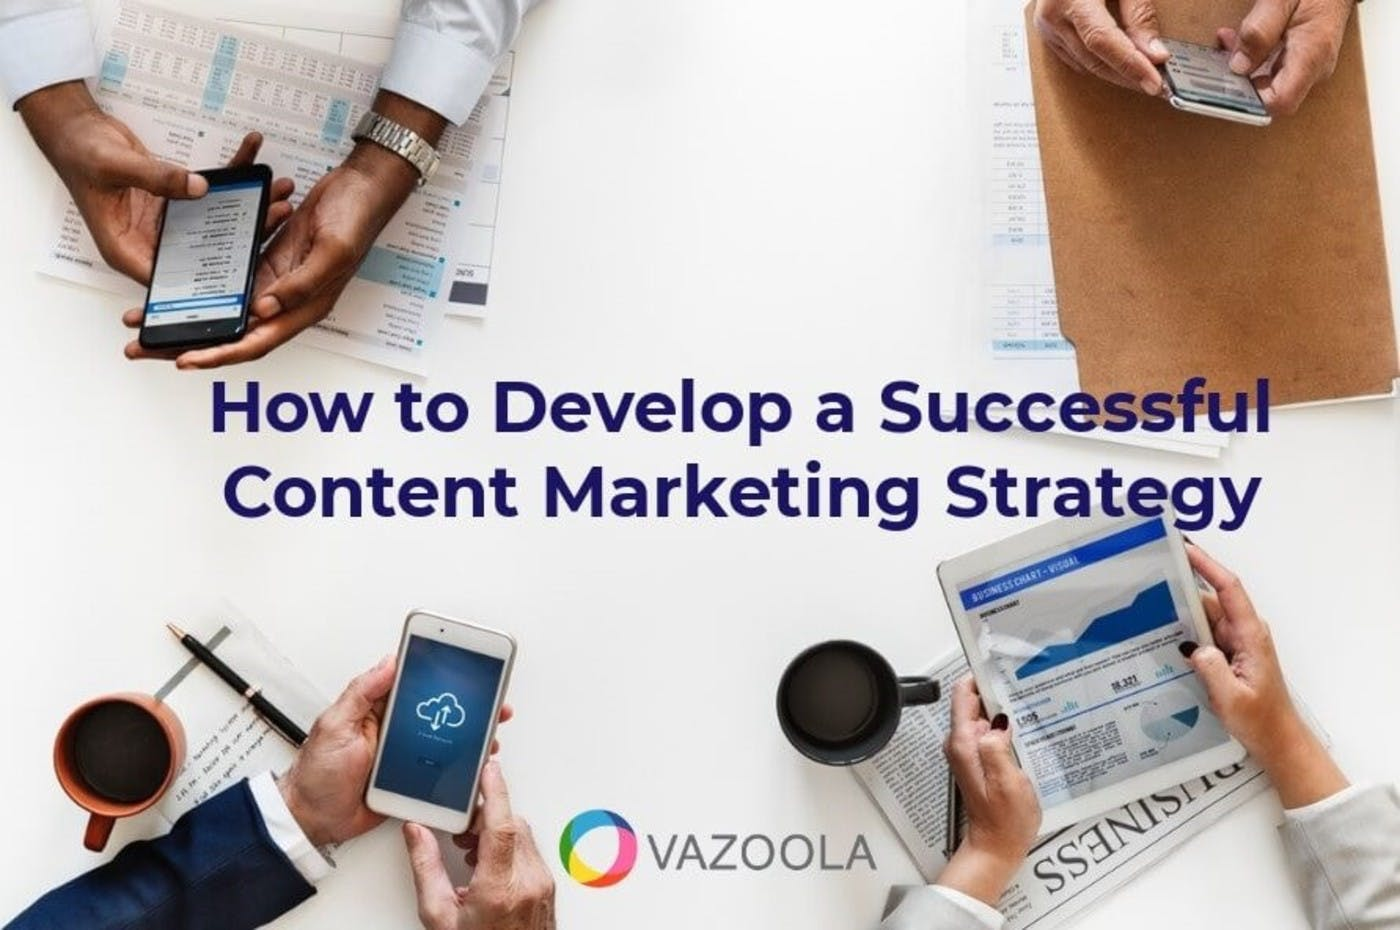 How to Develop a Successful Content Marketing Strategy